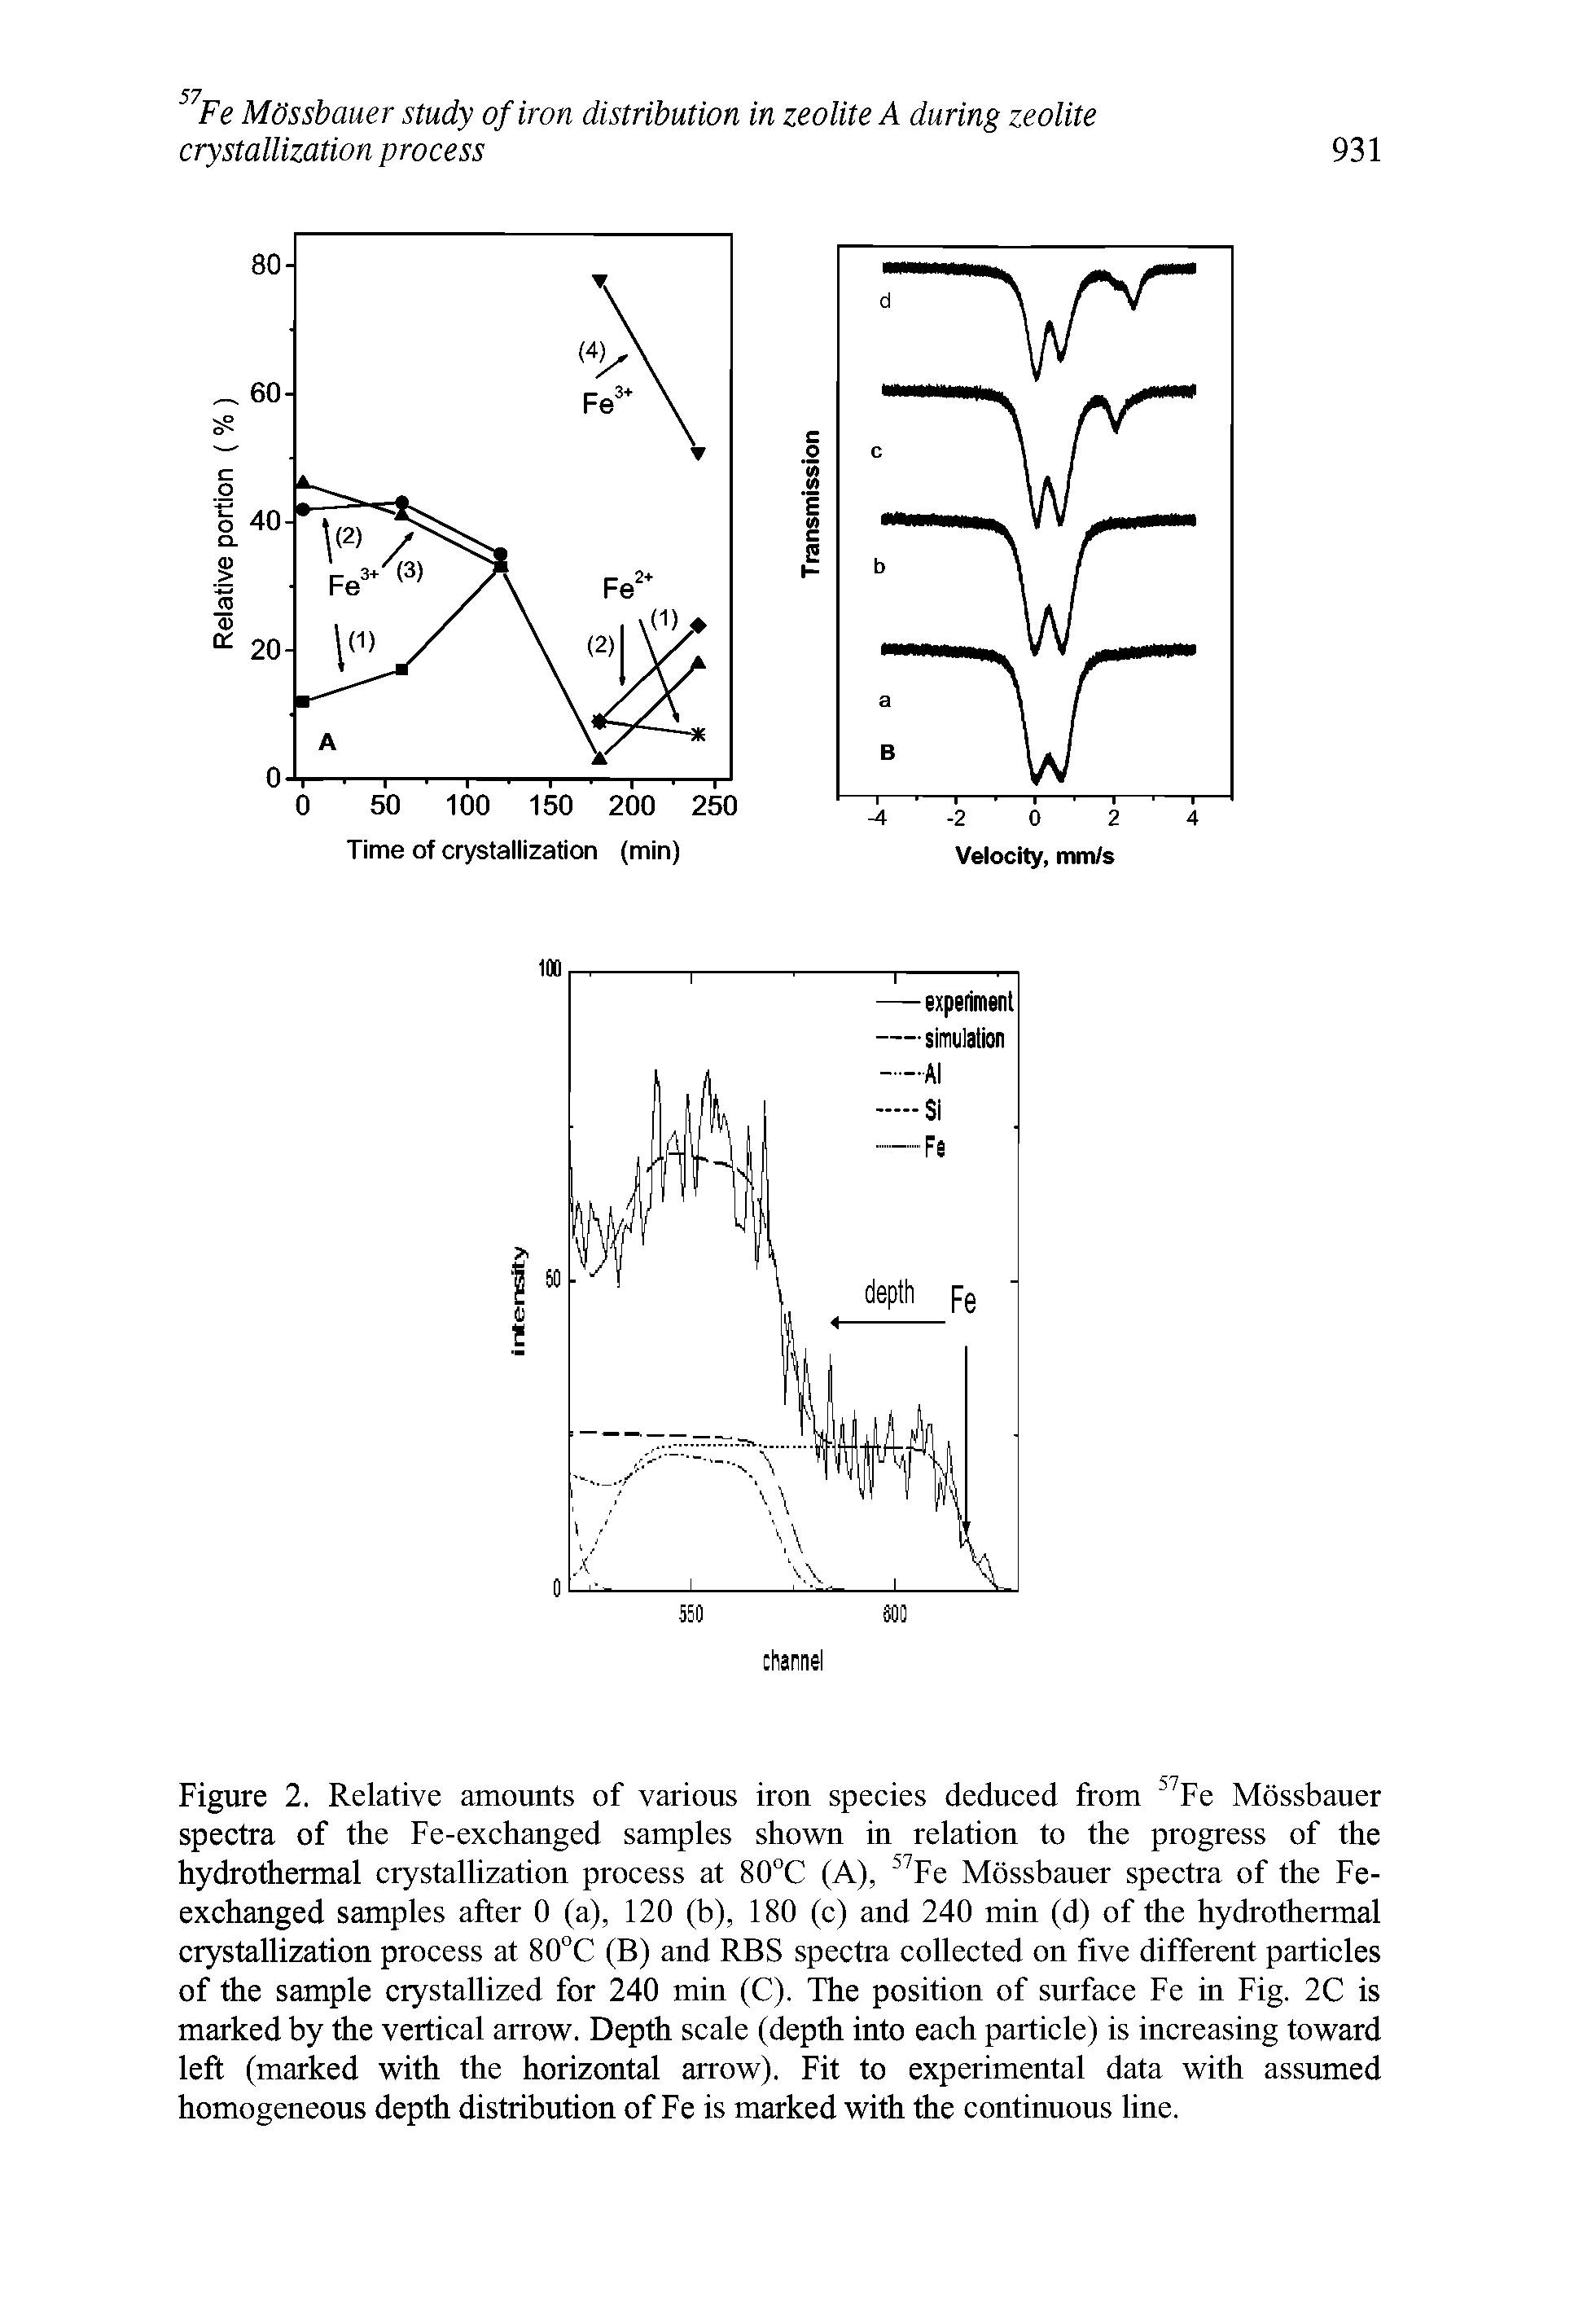 Figure 2. Relative amounts of various iron species deduced from 57Fe Mossbauer spectra of the Fe-exchanged samples shown in relation to the progress of the hydrothermal crystallization process at 80°C (A), 57Fe Mossbauer spectra of the Fe-exchanged samples after 0 (a), 120 (b), 180 (c) and 240 min (d) of the hydrothermal crystallization process at 80°C (B) and RBS spectra collected on five different particles of the sample crystallized for 240 min (C). The position of surface Fe in Fig. 2C is marked by the vertical arrow. Depth scale (depth into each particle) is increasing toward left (marked with the horizontal arrow). Fit to experimental data with assumed homogeneous depth distribution of Fe is marked with the continuous line.